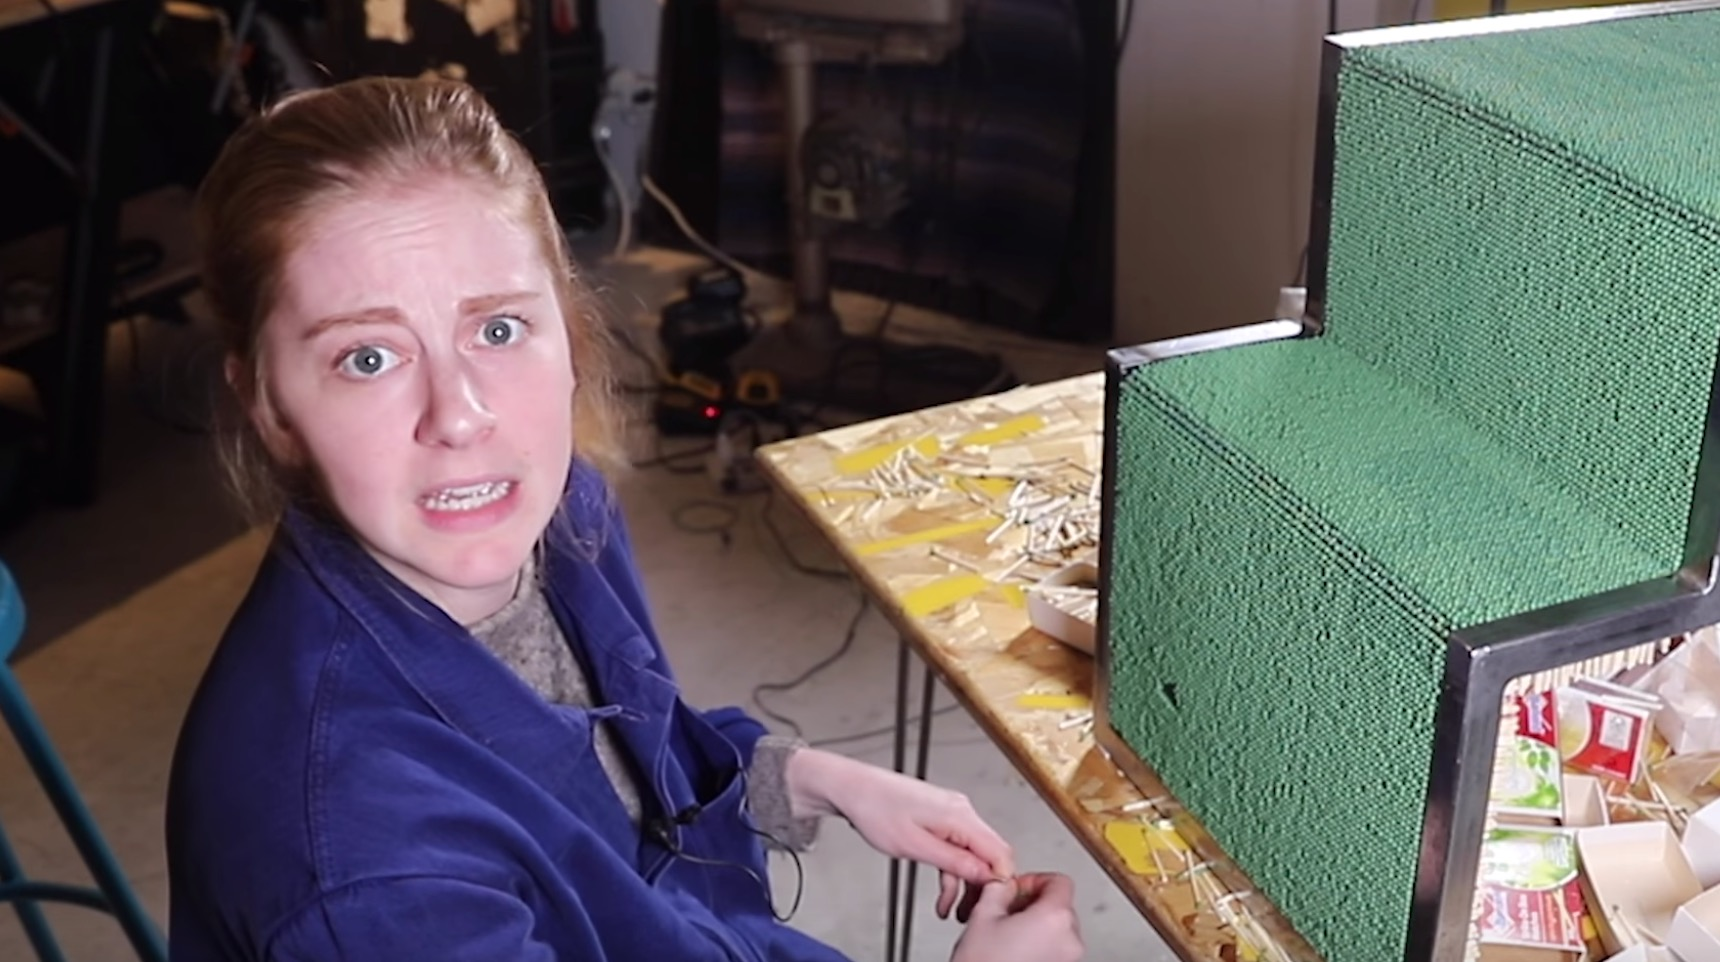 Simone Giertz Makes A Coffee Table Out Of 20,000 Matches, Sets It On Fire